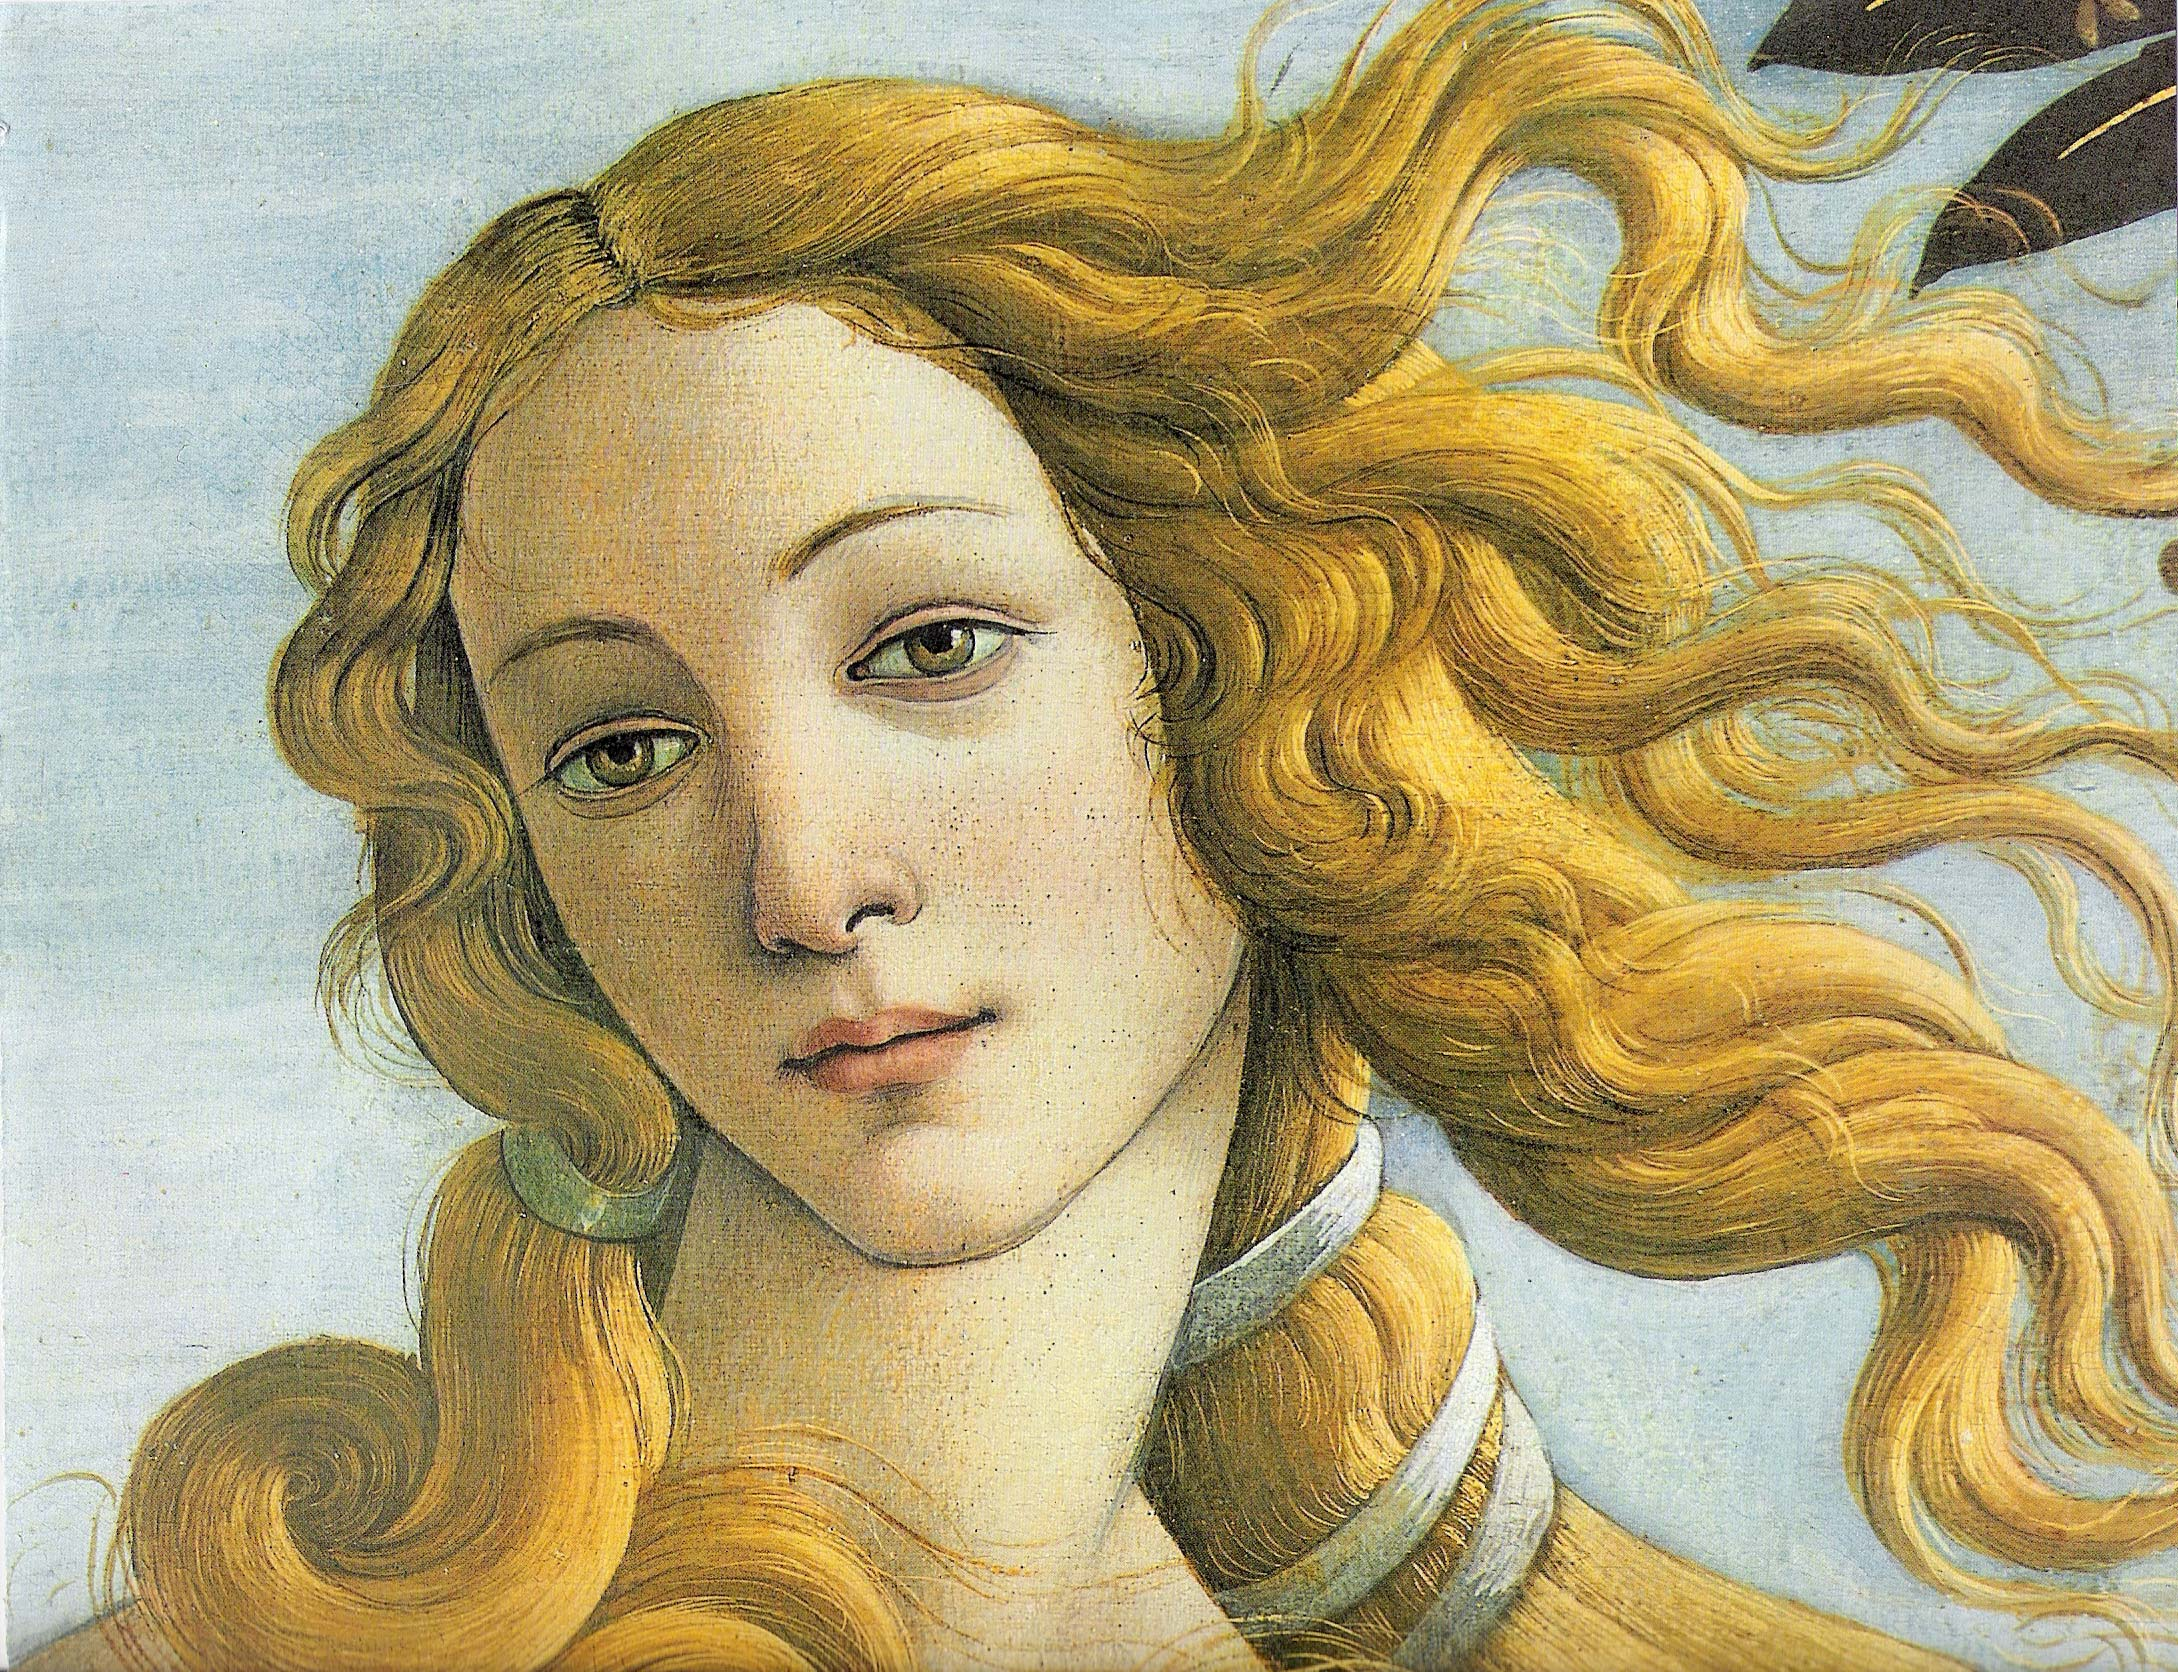 File:Venus botticelli detail.jpg